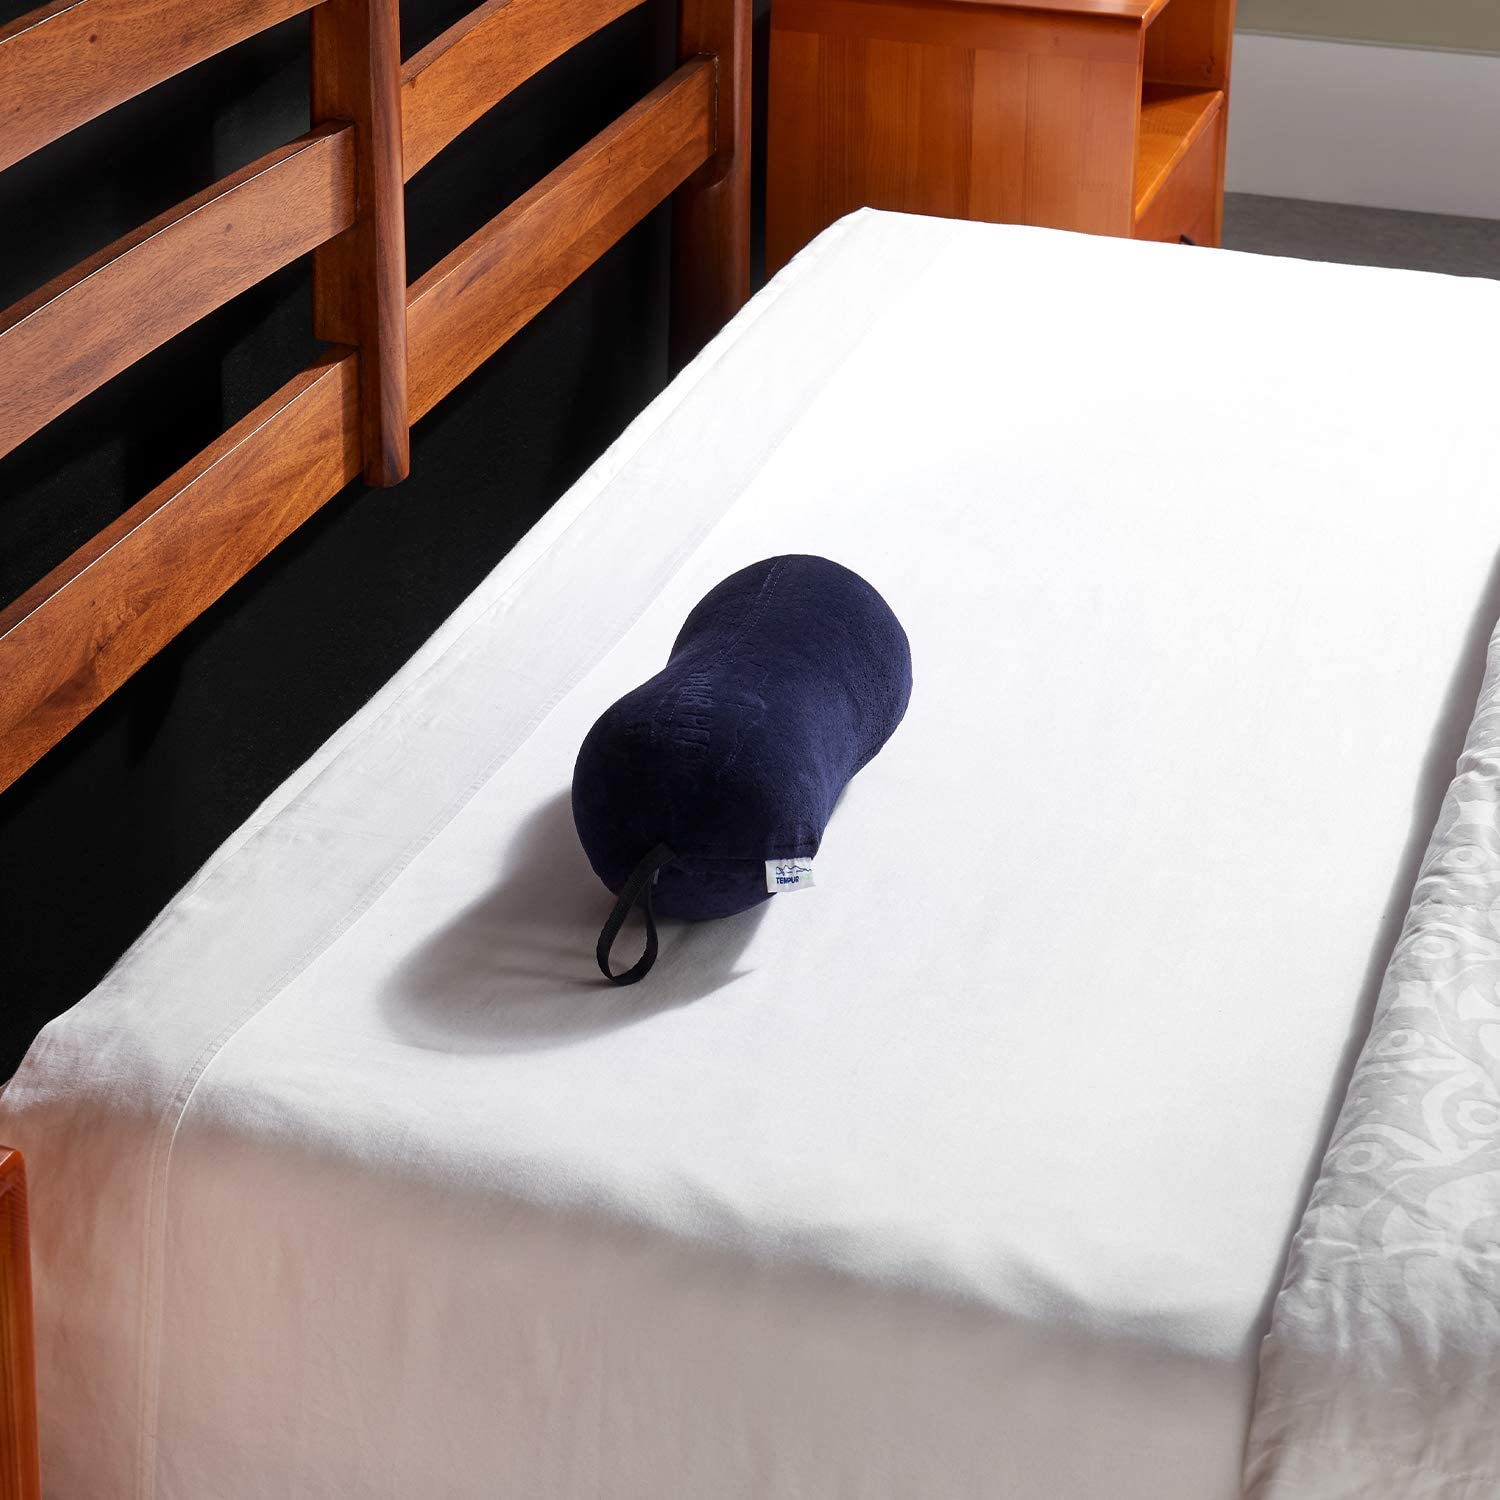 Improve the quality of sleep you are getting by investing in a medical pillow for your neck pain.